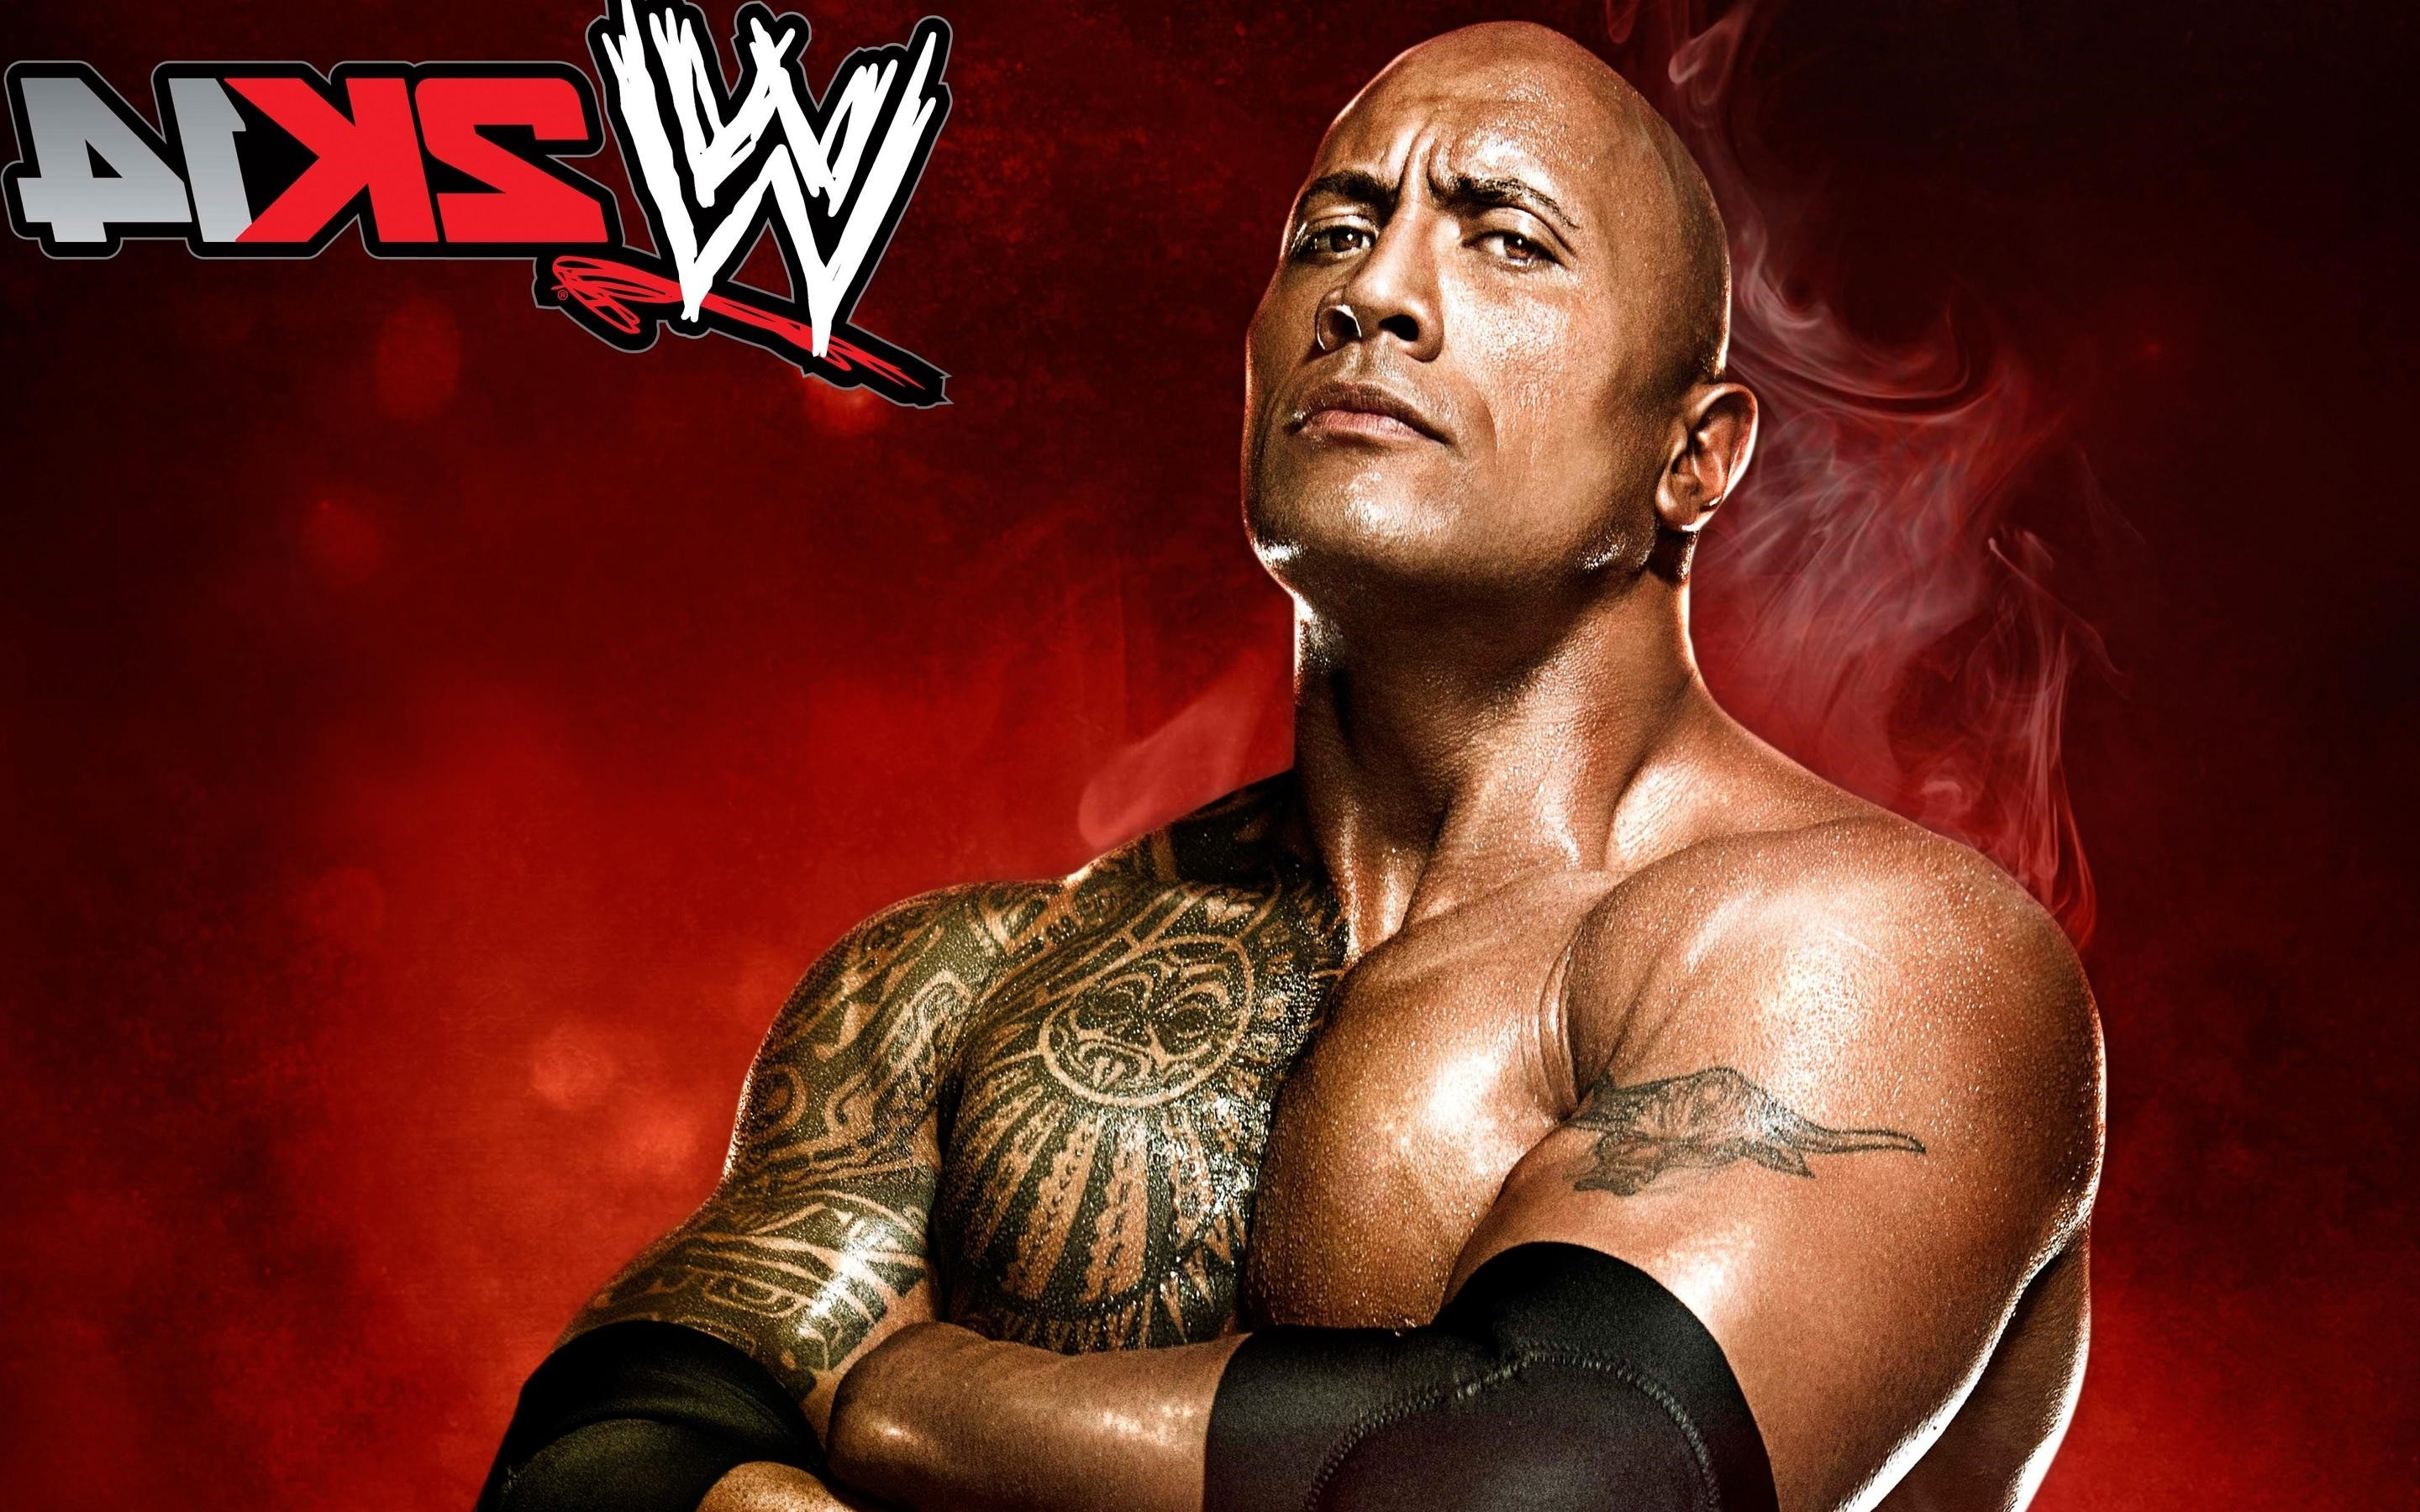 Res: 2880x1800, 1920x1200 WWE HD WALLPAPERS 2015   ImageTown.in